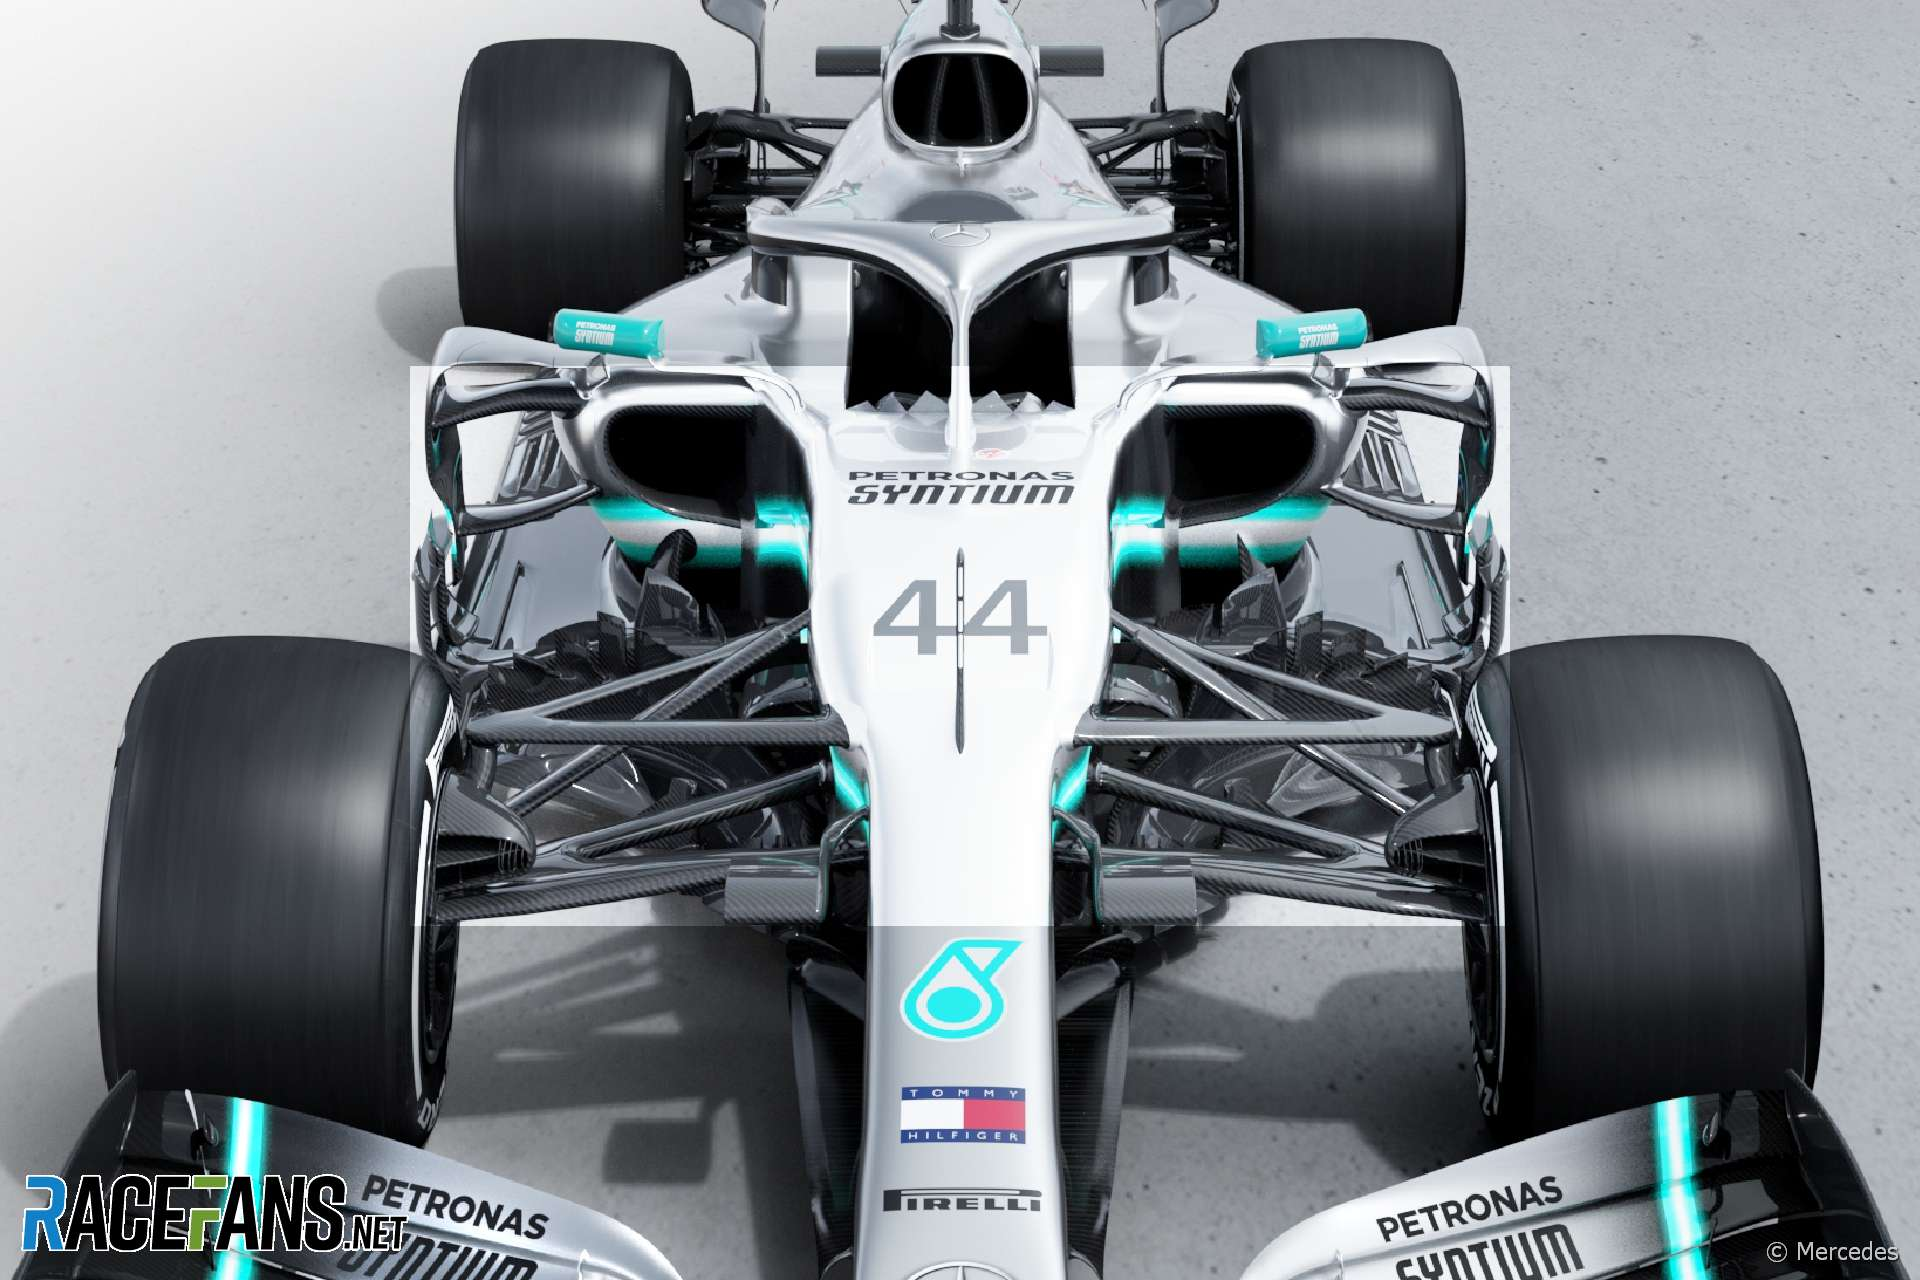 Mercedes reveal their 2019 challenger